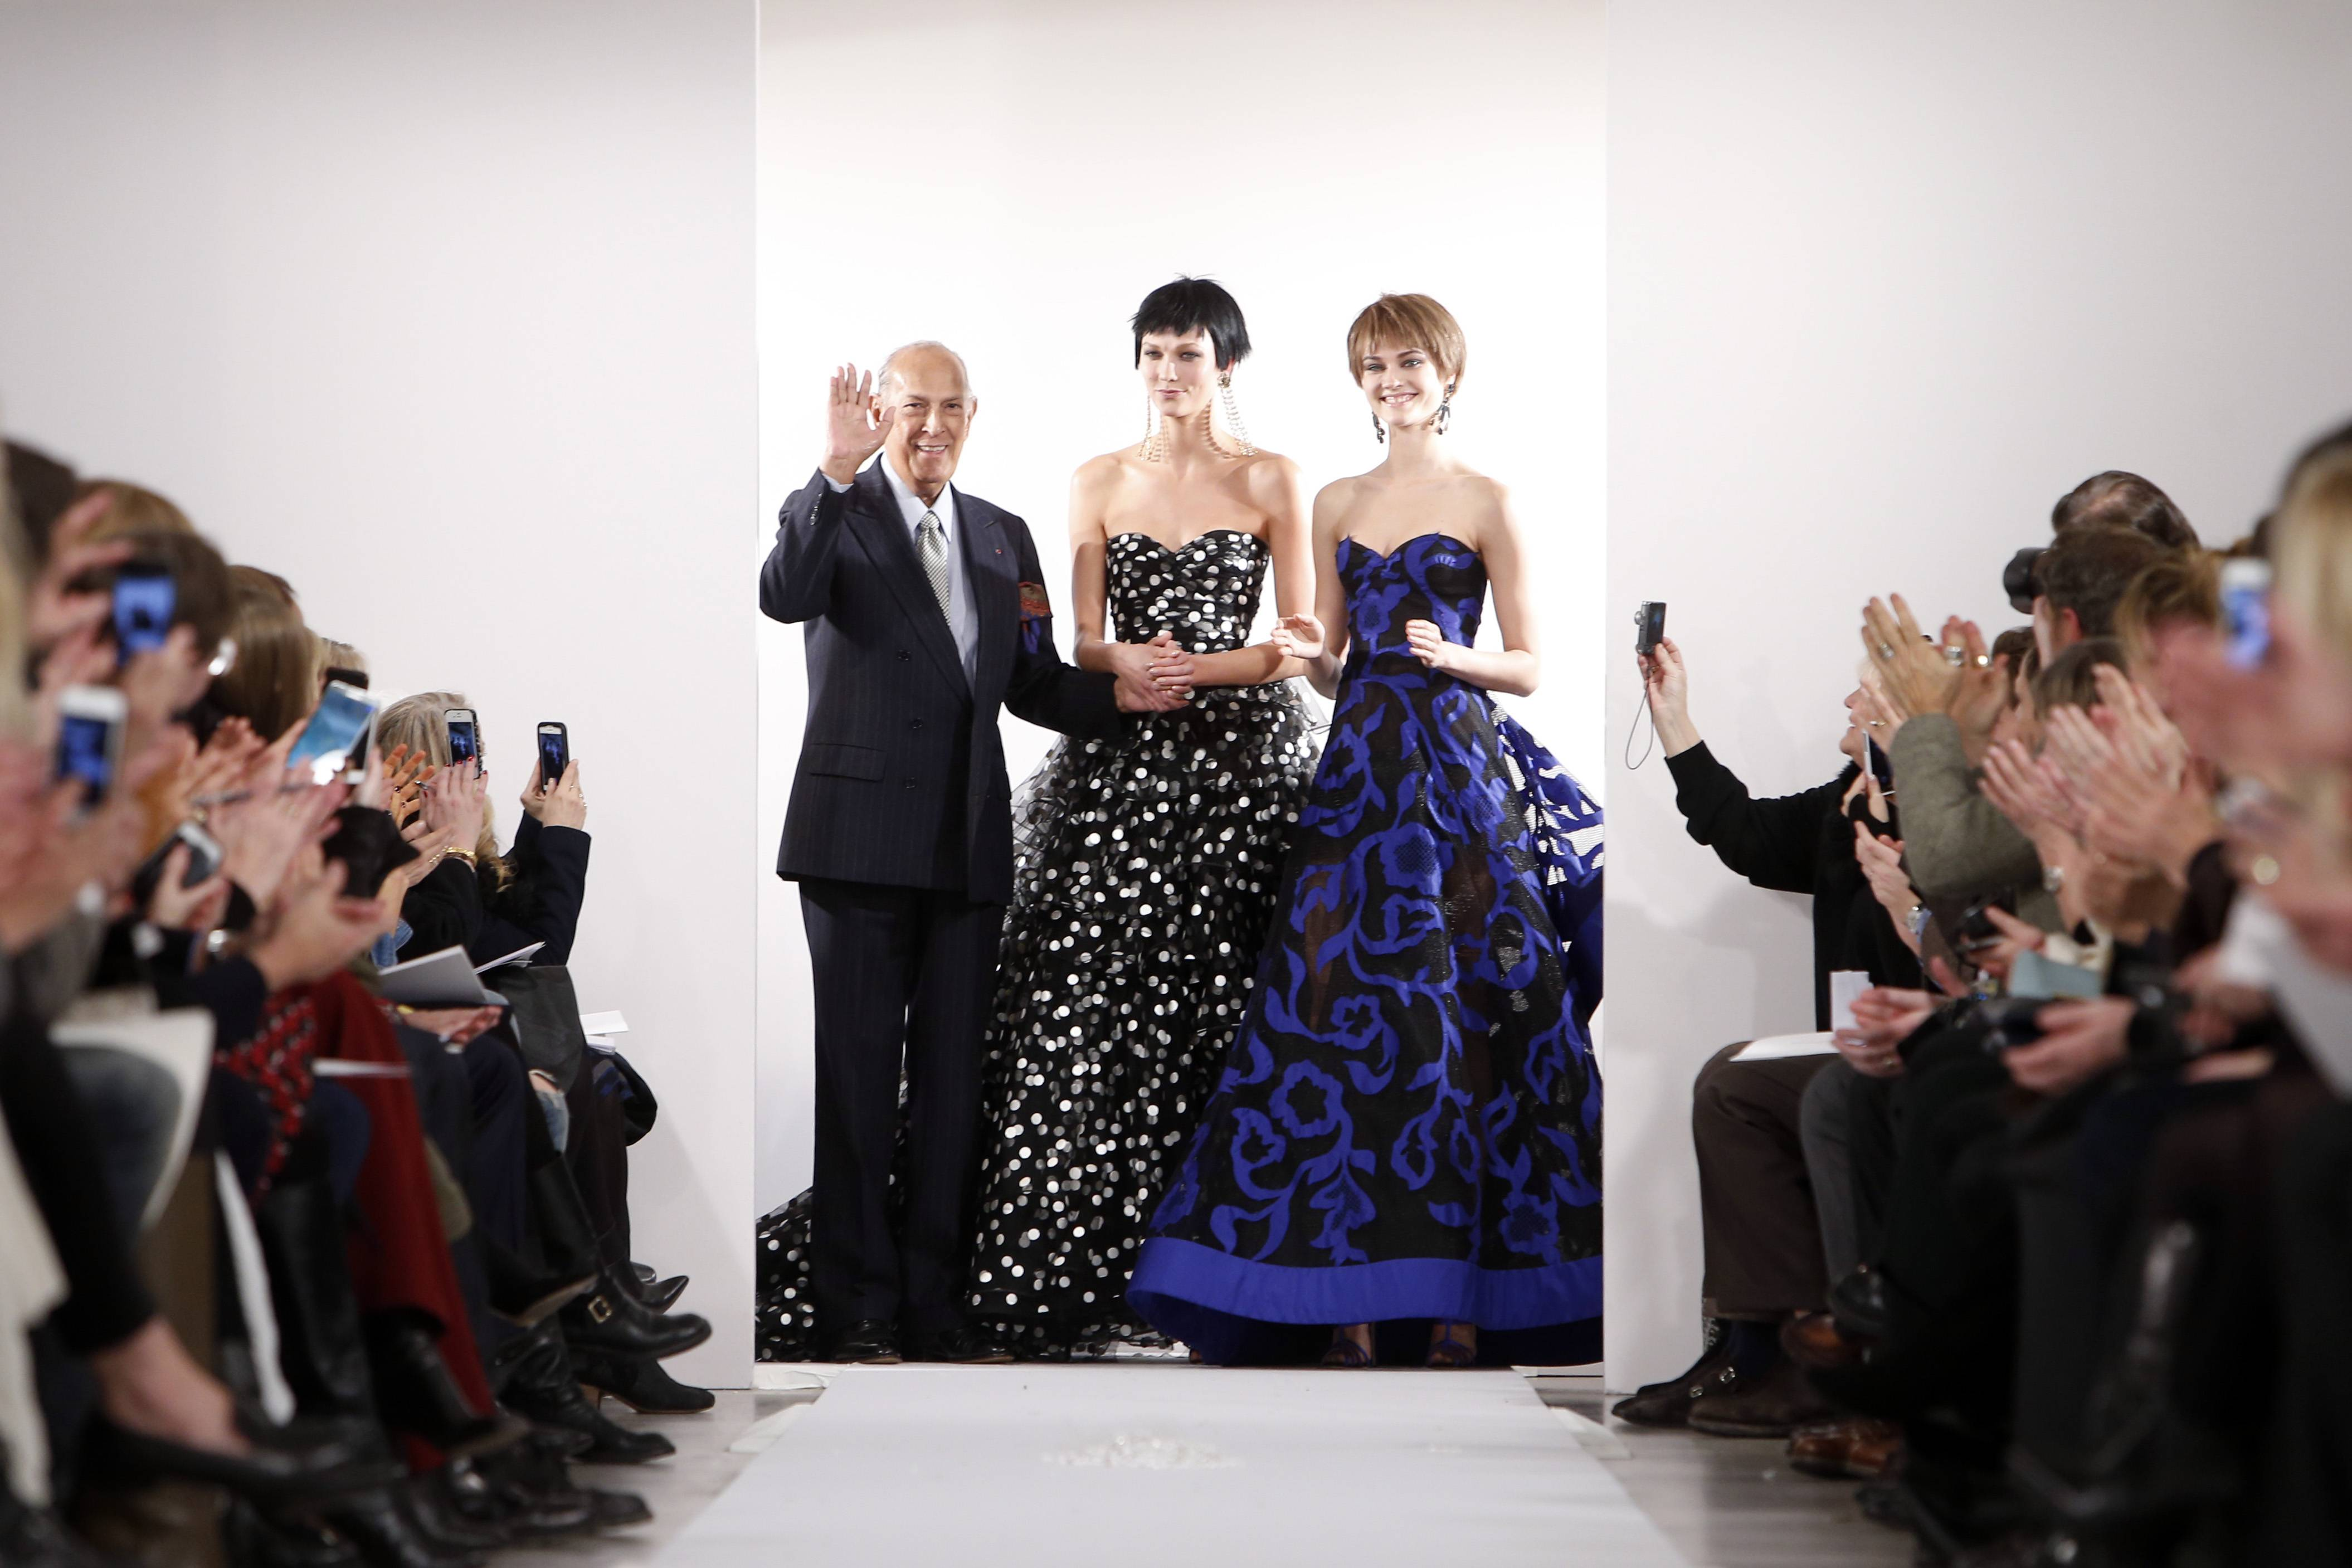 In this Feb. 11, 2014 file photo, Designer Oscar de la Renta acknowledges the audience after his Fall 2014 collection show during Fashion Week in New York. The designer de la Renta, a favorite of socialites and movie stars alike, has died. He was 82.